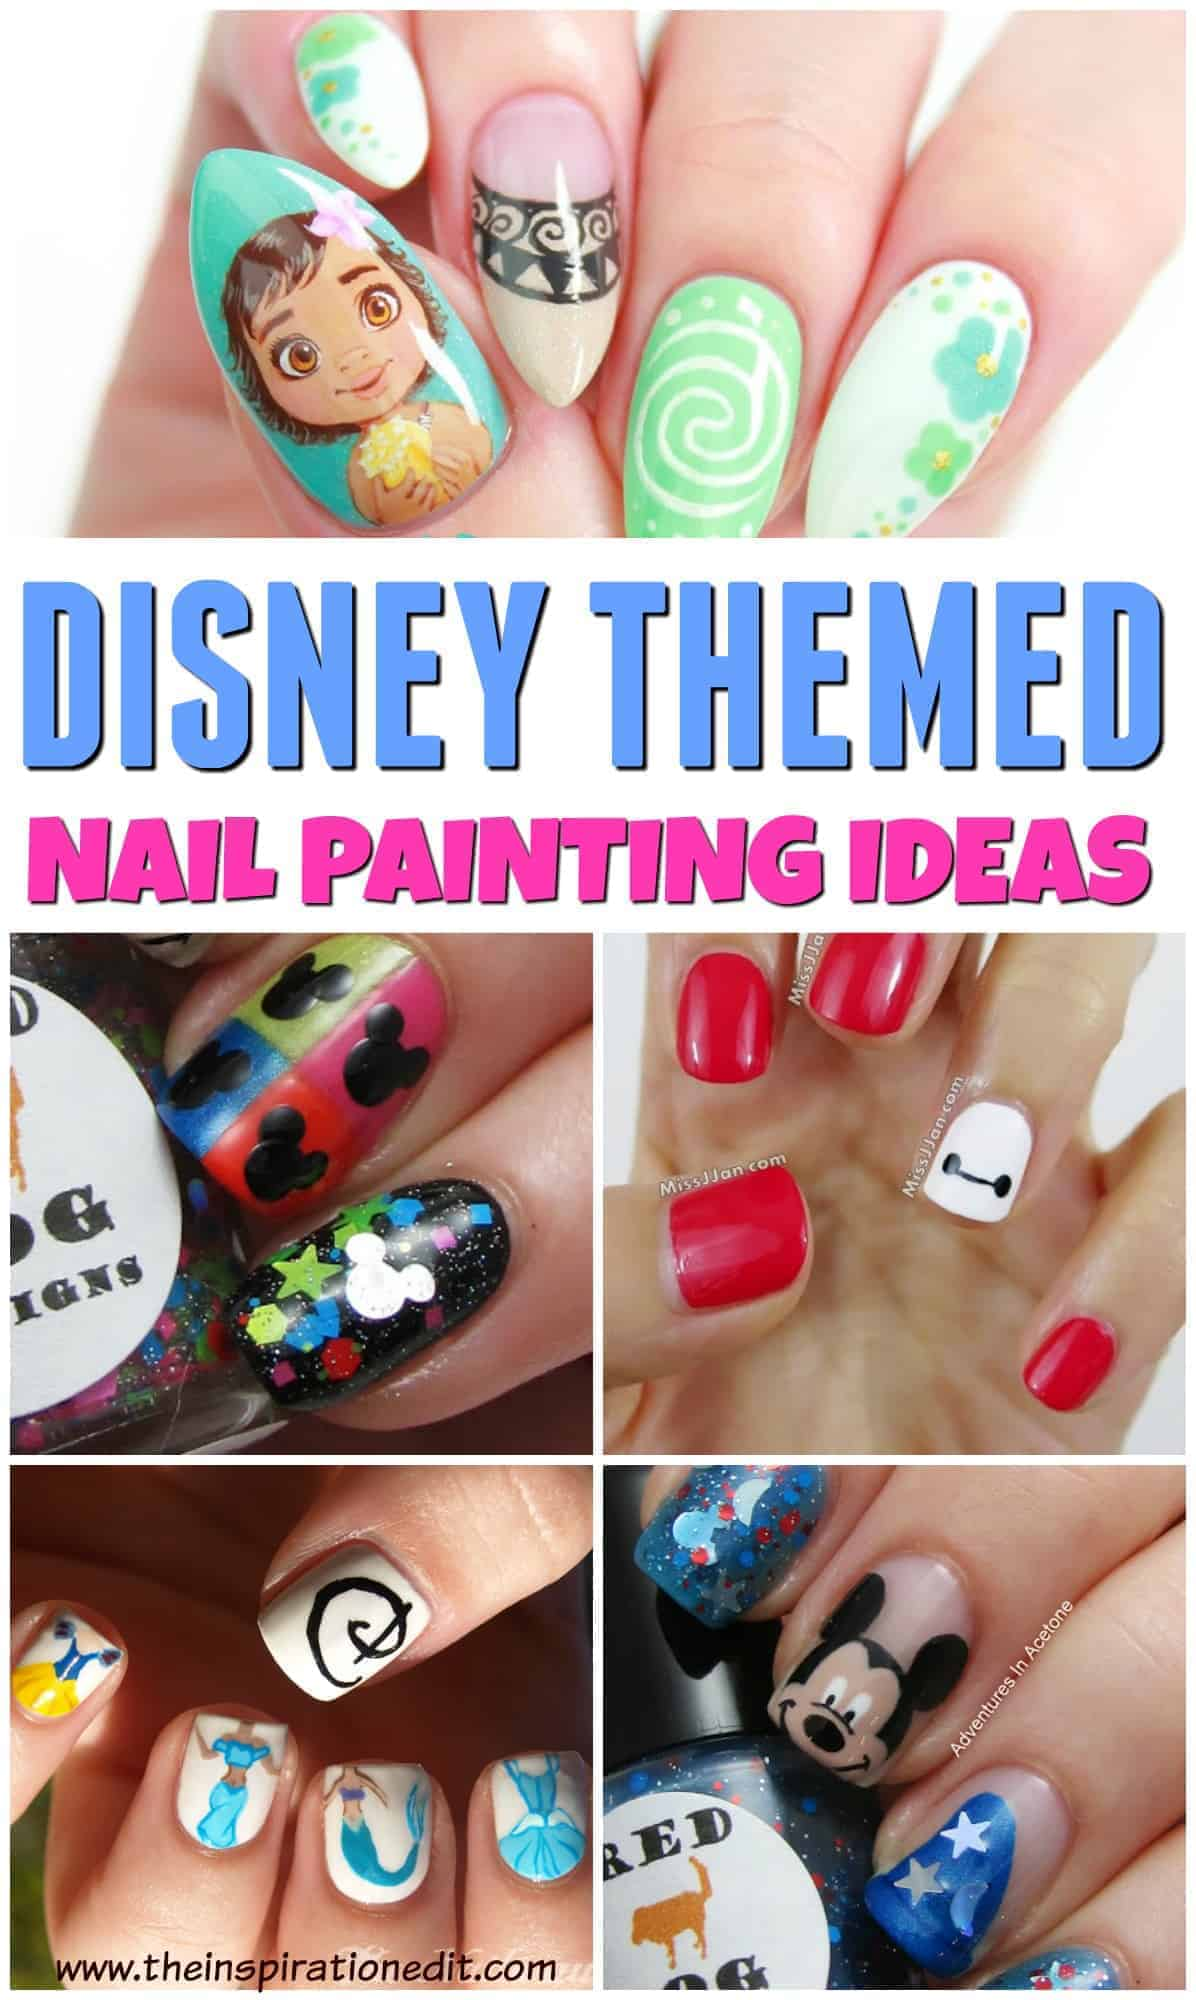 Get inspired with these Disney Themed nail painting ideas!